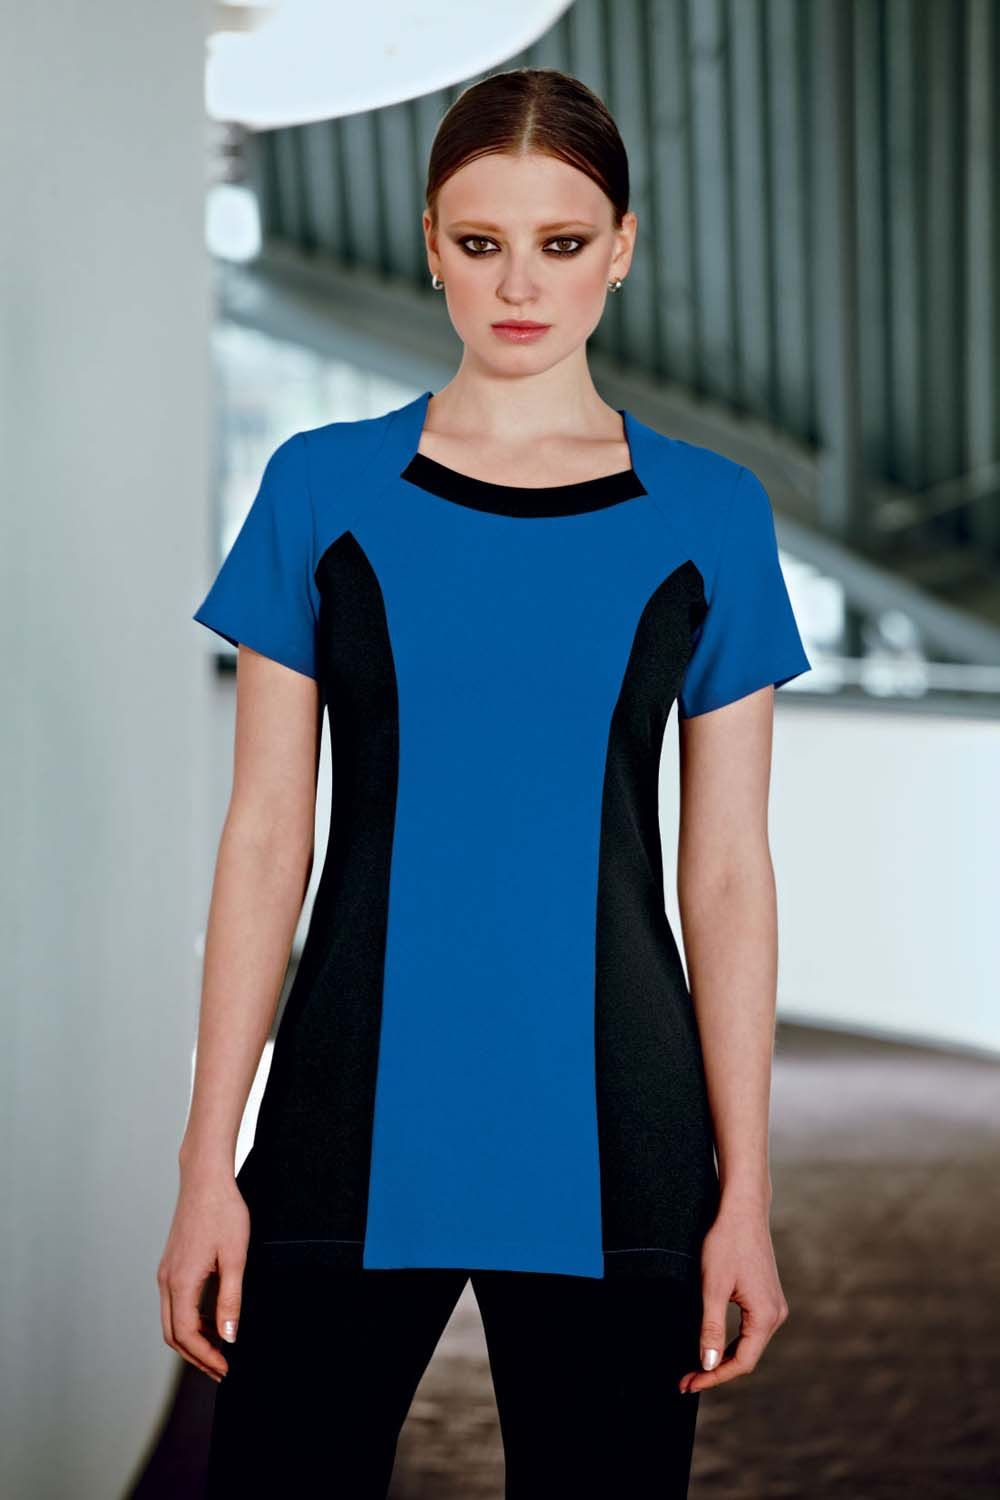 a8b308e7a22b3a Cobalt blue bolero beauty tunic with contrast black side panels ...